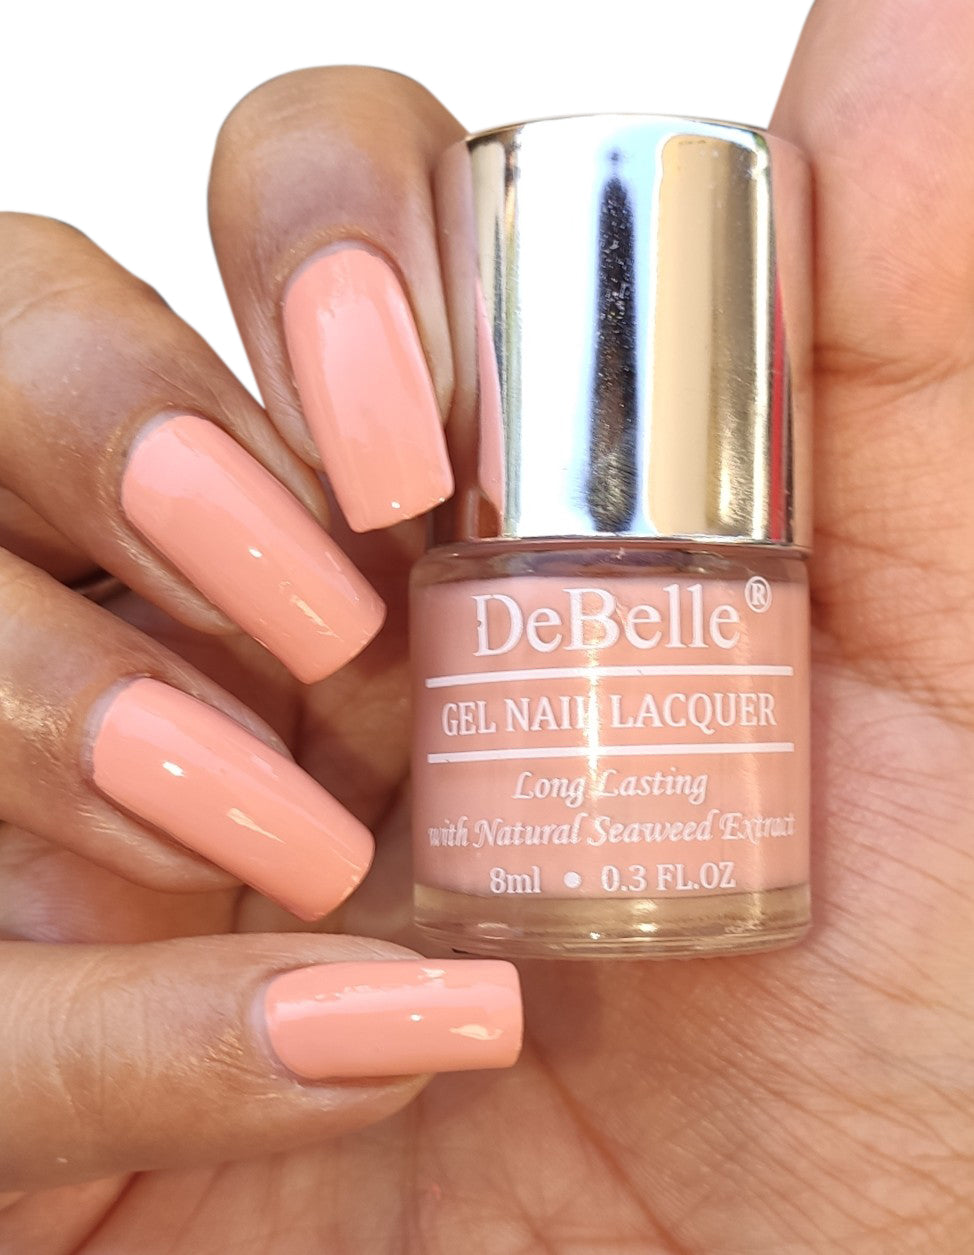 DeBelle Pastel Brown Nail Polish